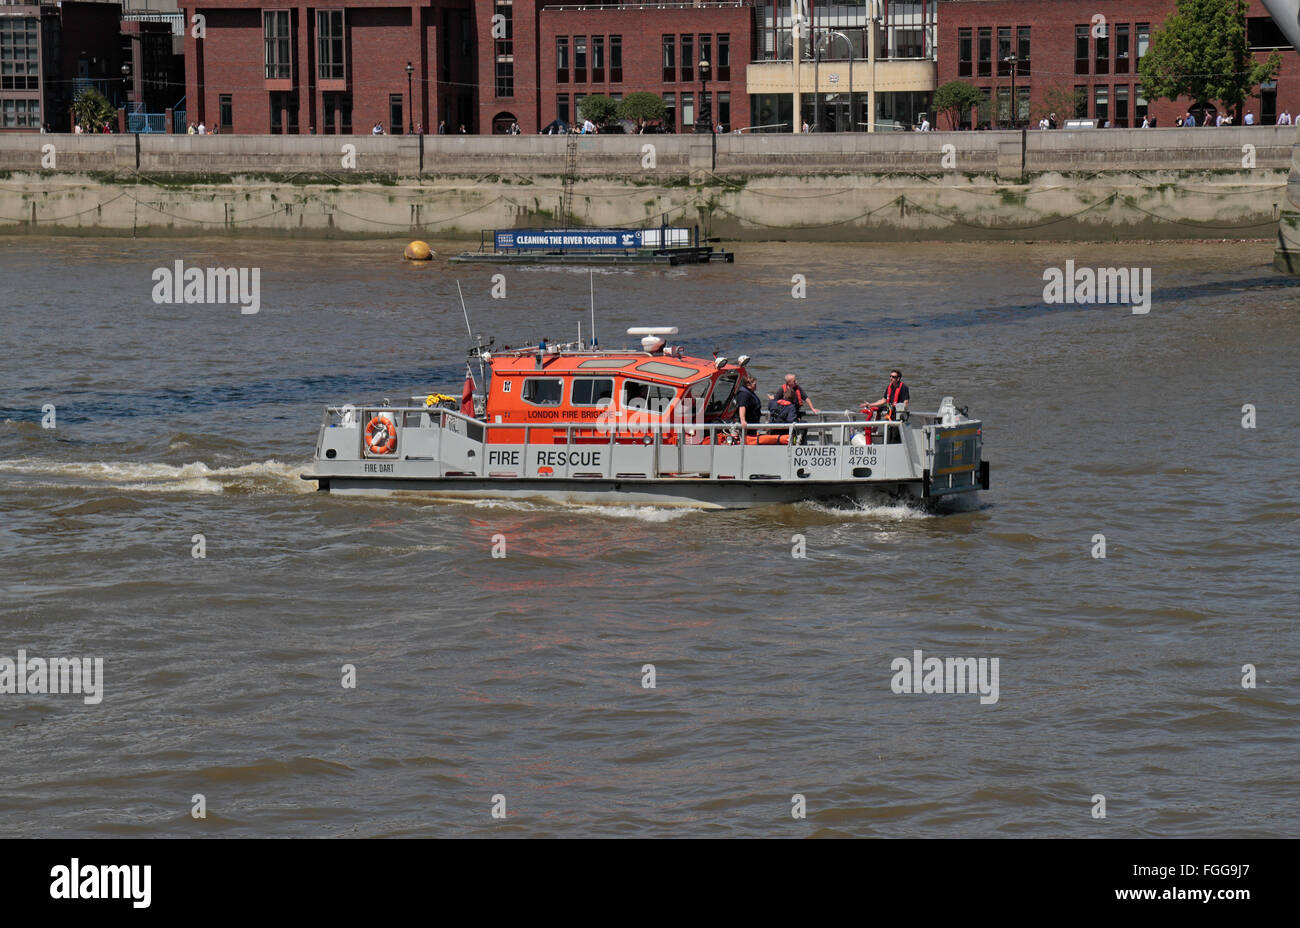 The London Fire Brigade fire rescue boat Fire Dart, on the River Thames in London, UK. - Stock Image